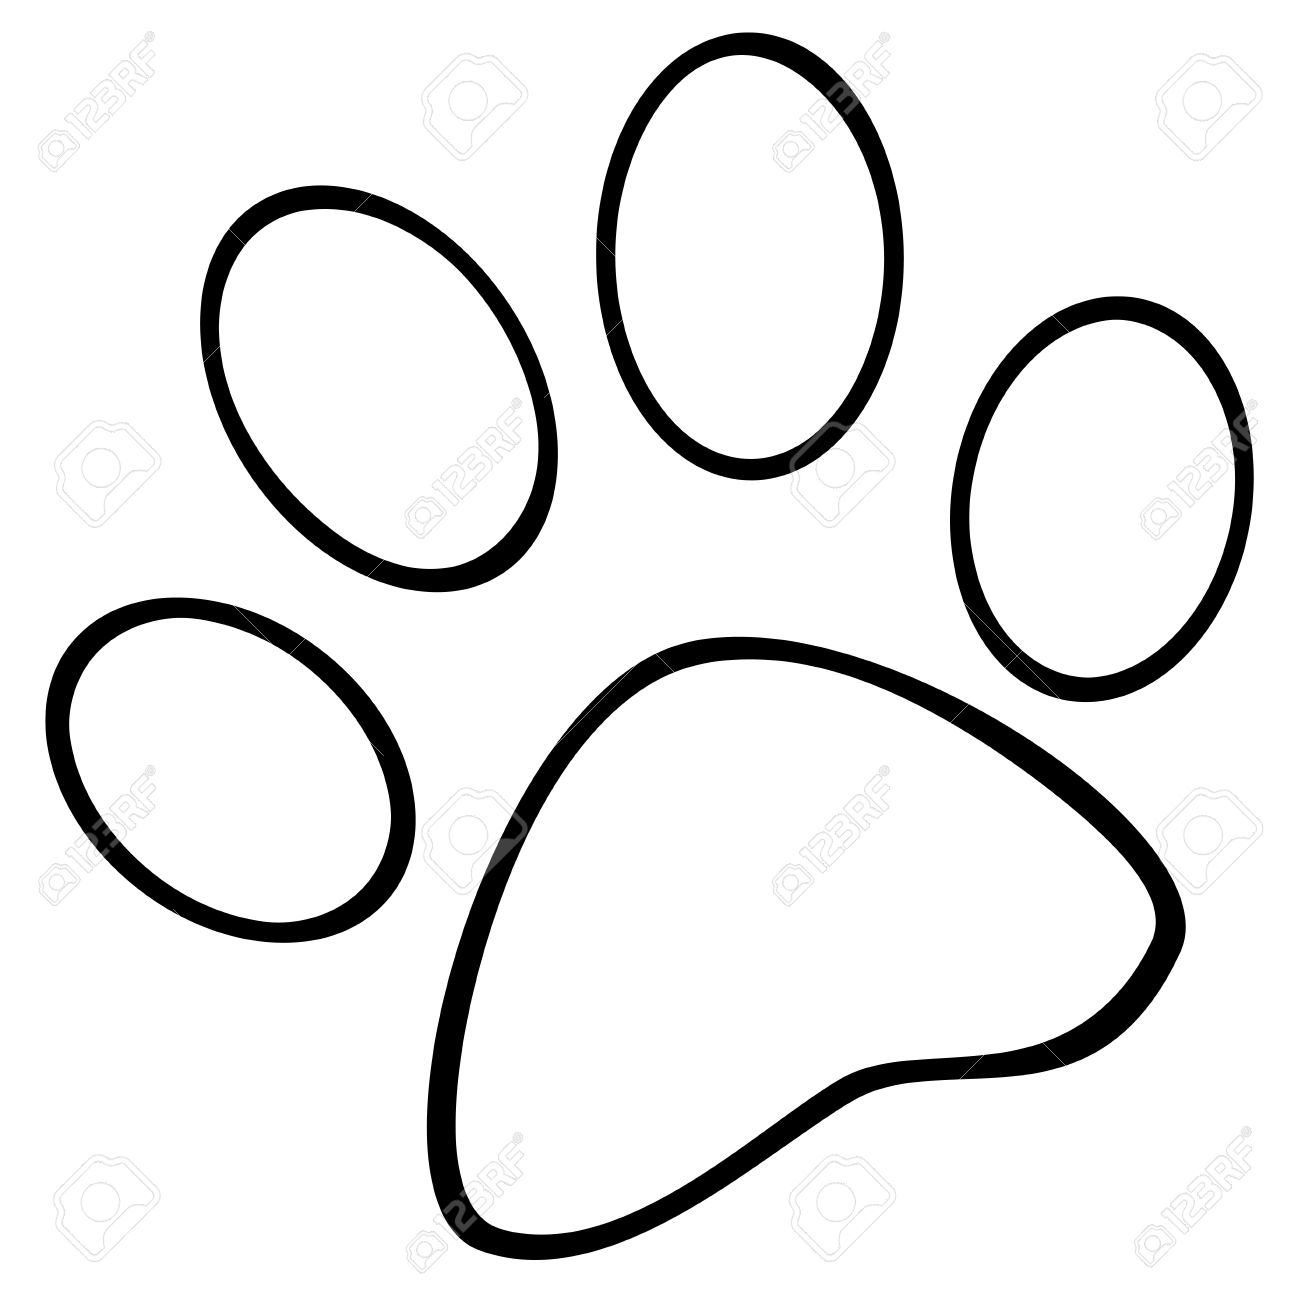 Learn How To Draw A Simple Dog: Easy Stepbystep Drawing Tutorial Dog Paw:  Outlined